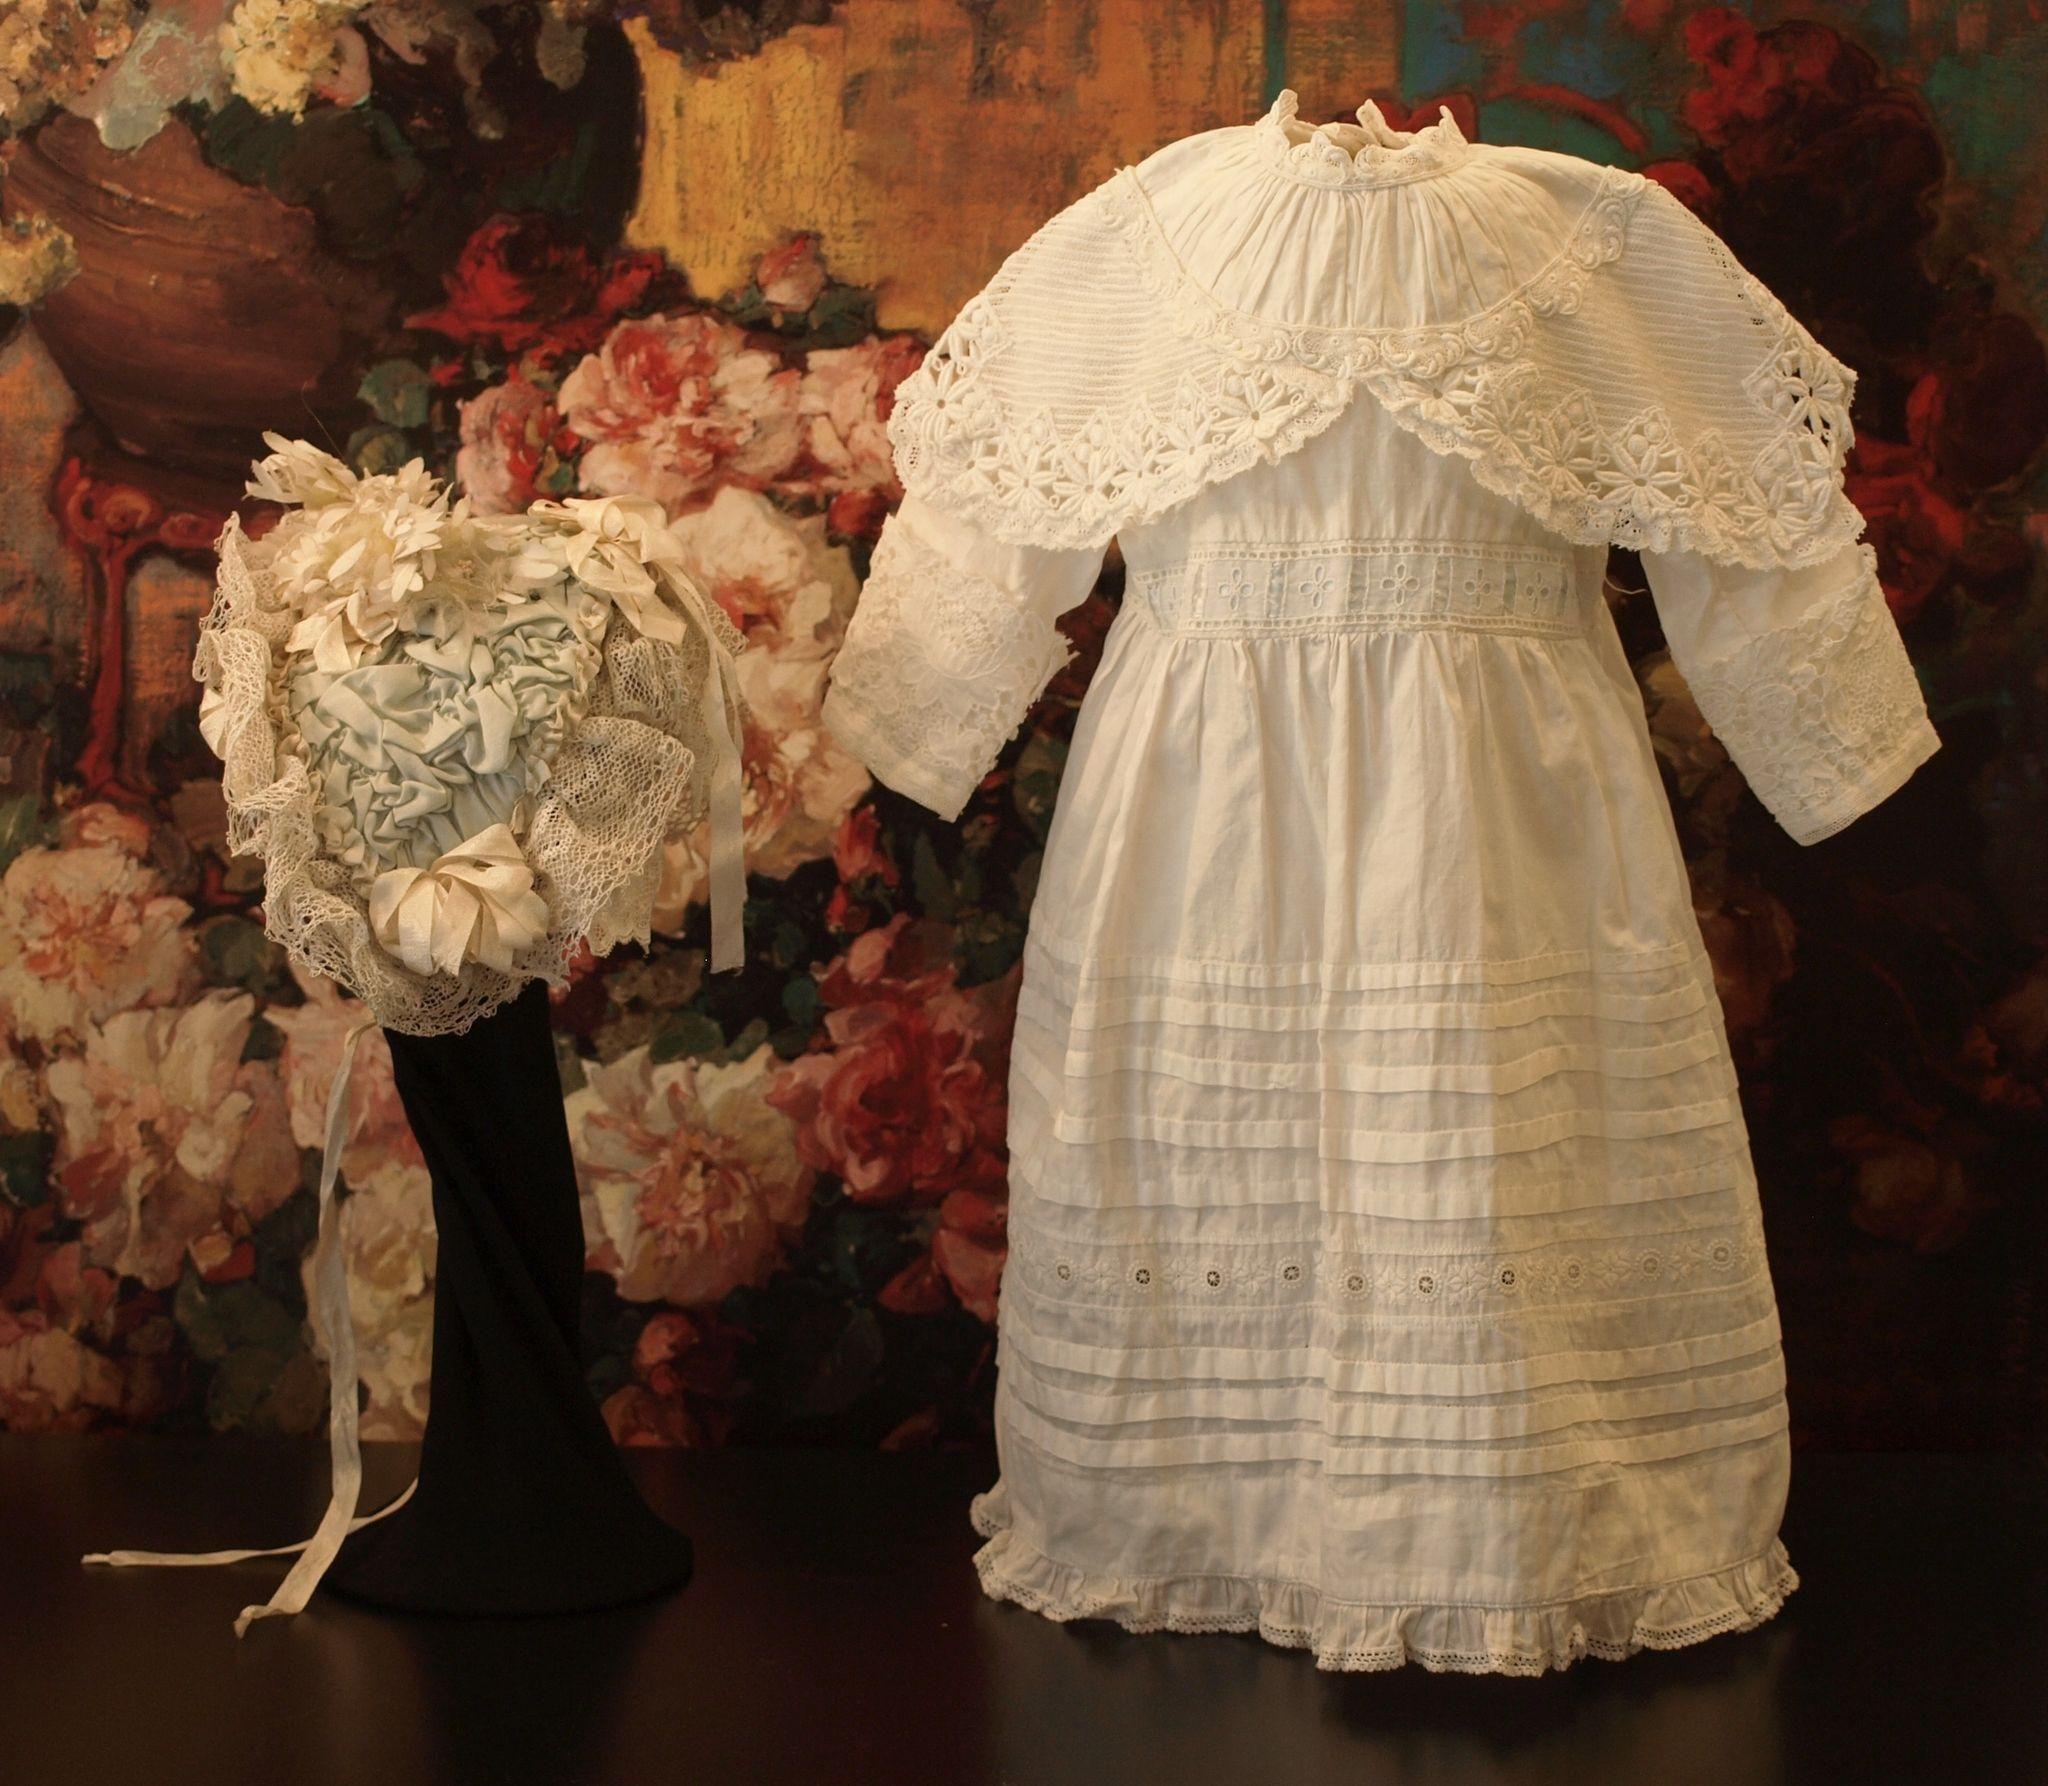 Beautiful Antique Doll Dress with Broderie Anglaise Design